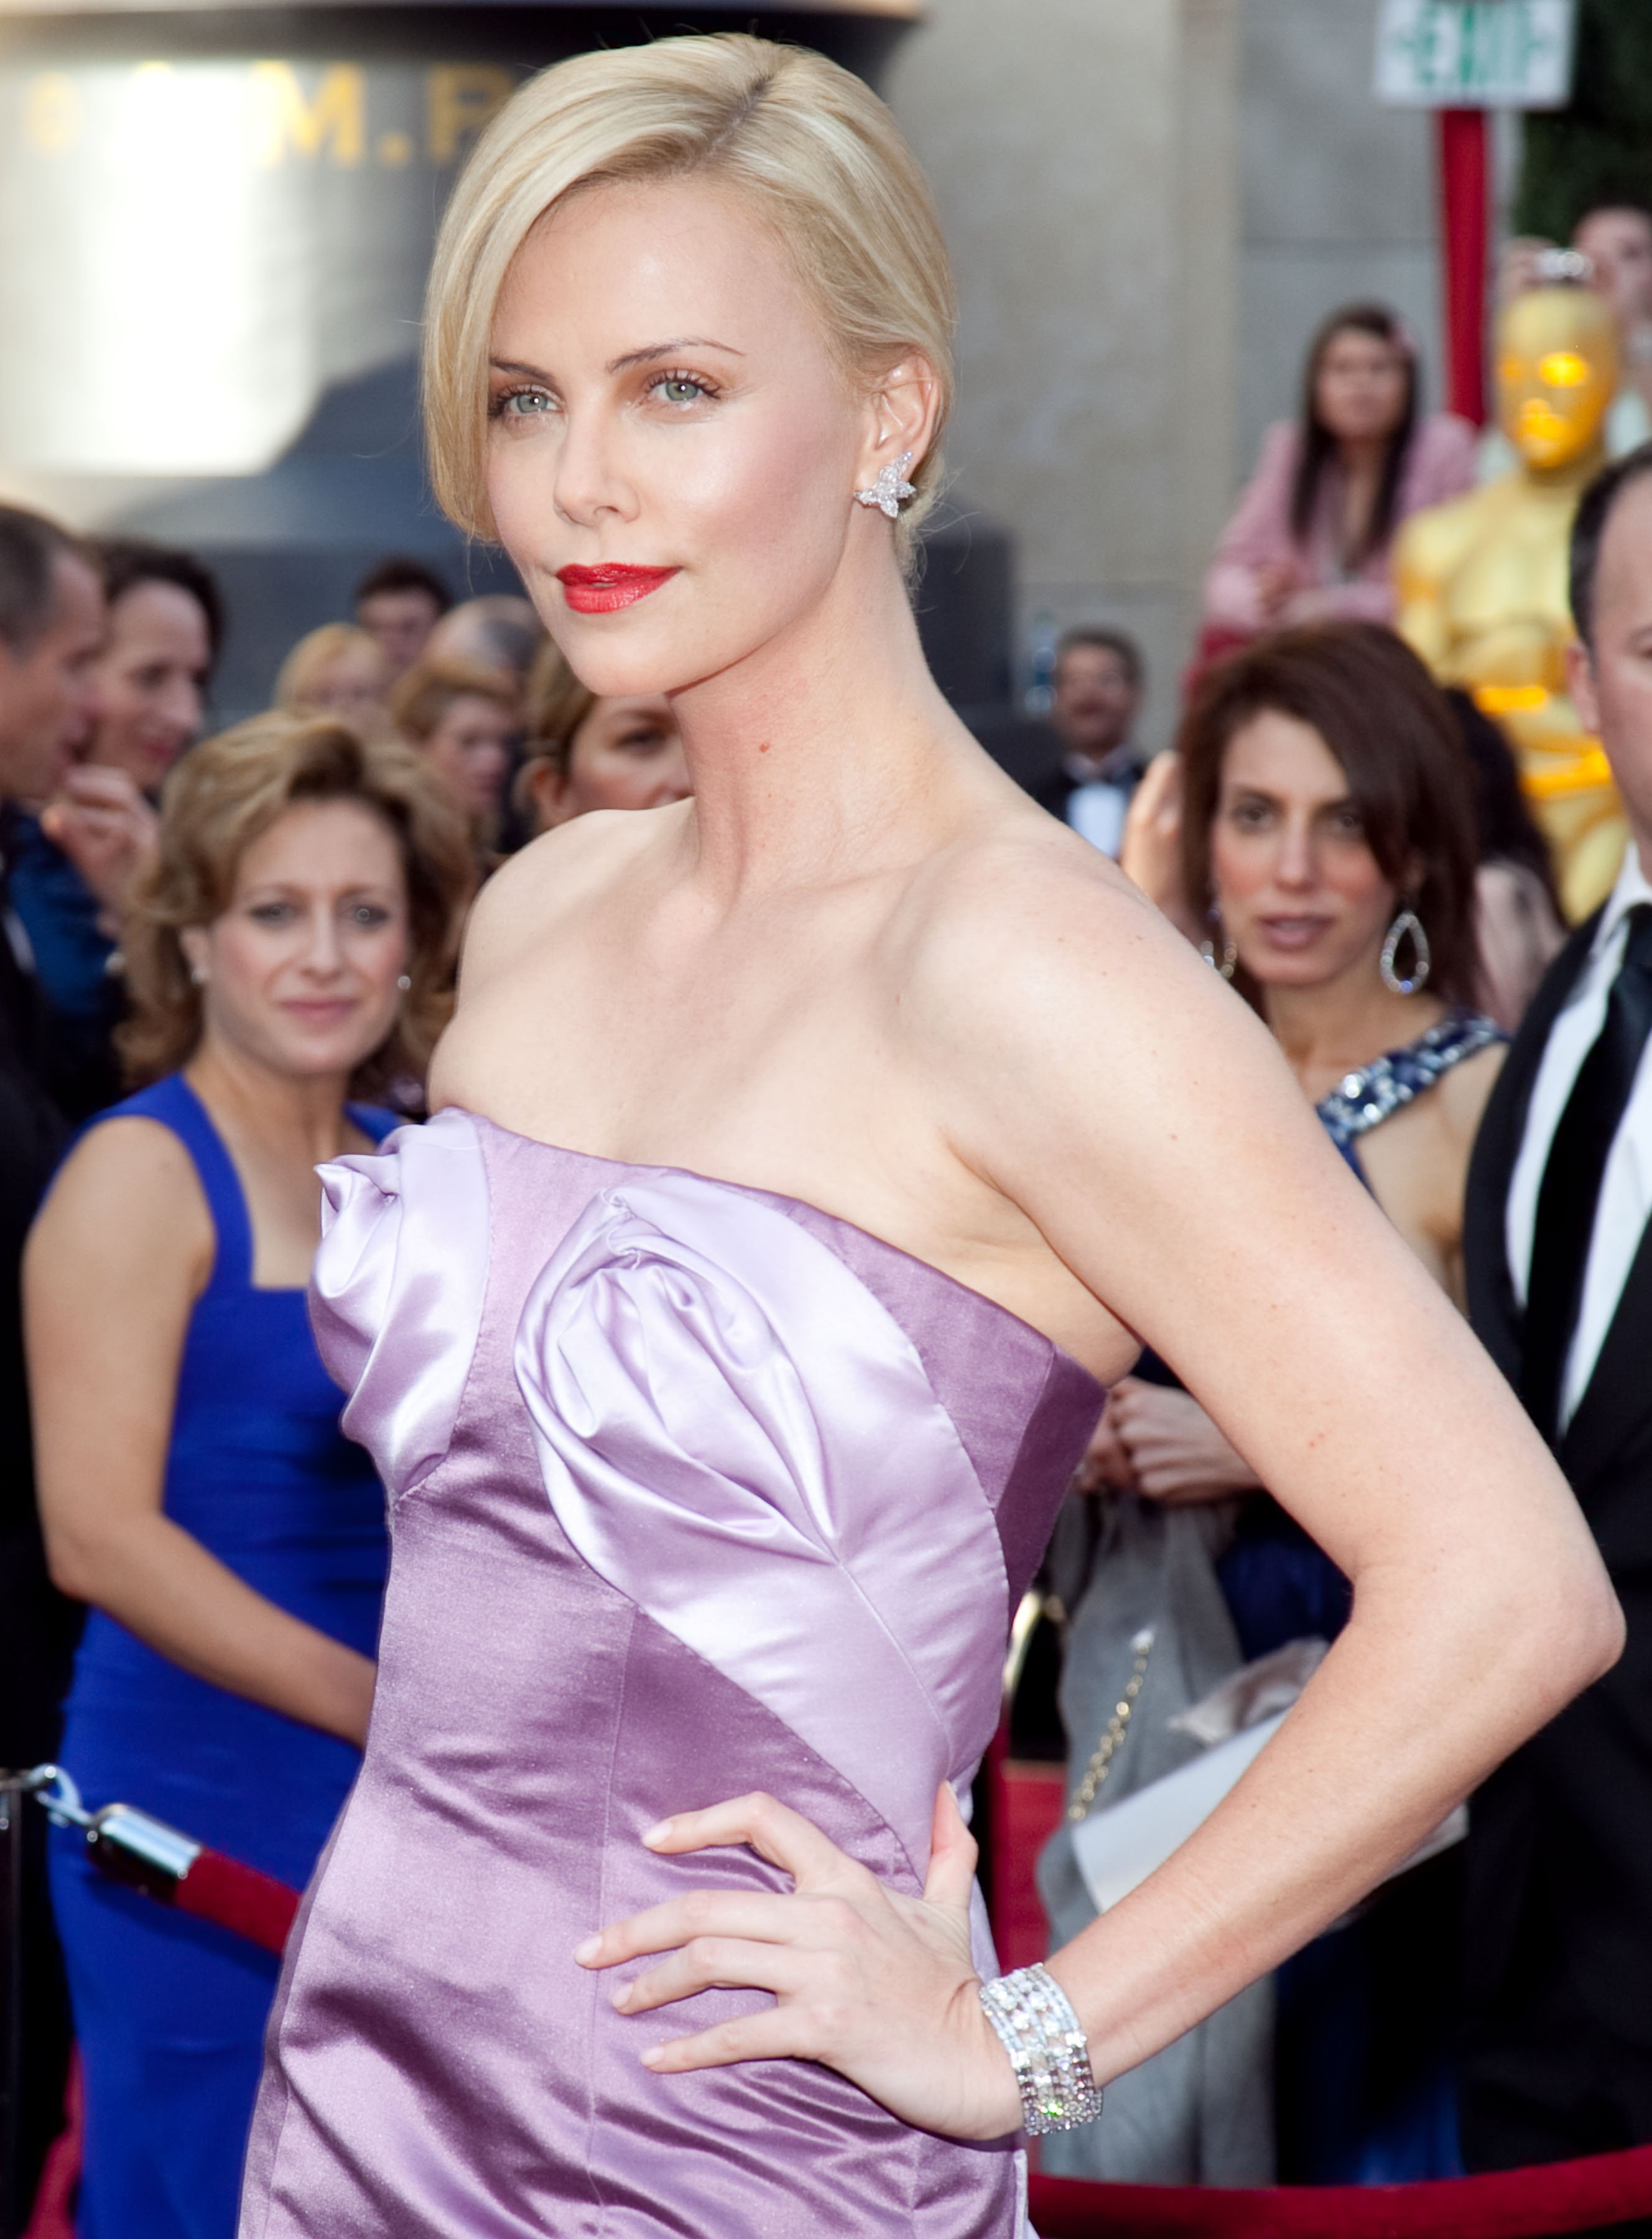 Image Source: Getty Images/Charlize at a red carpet event